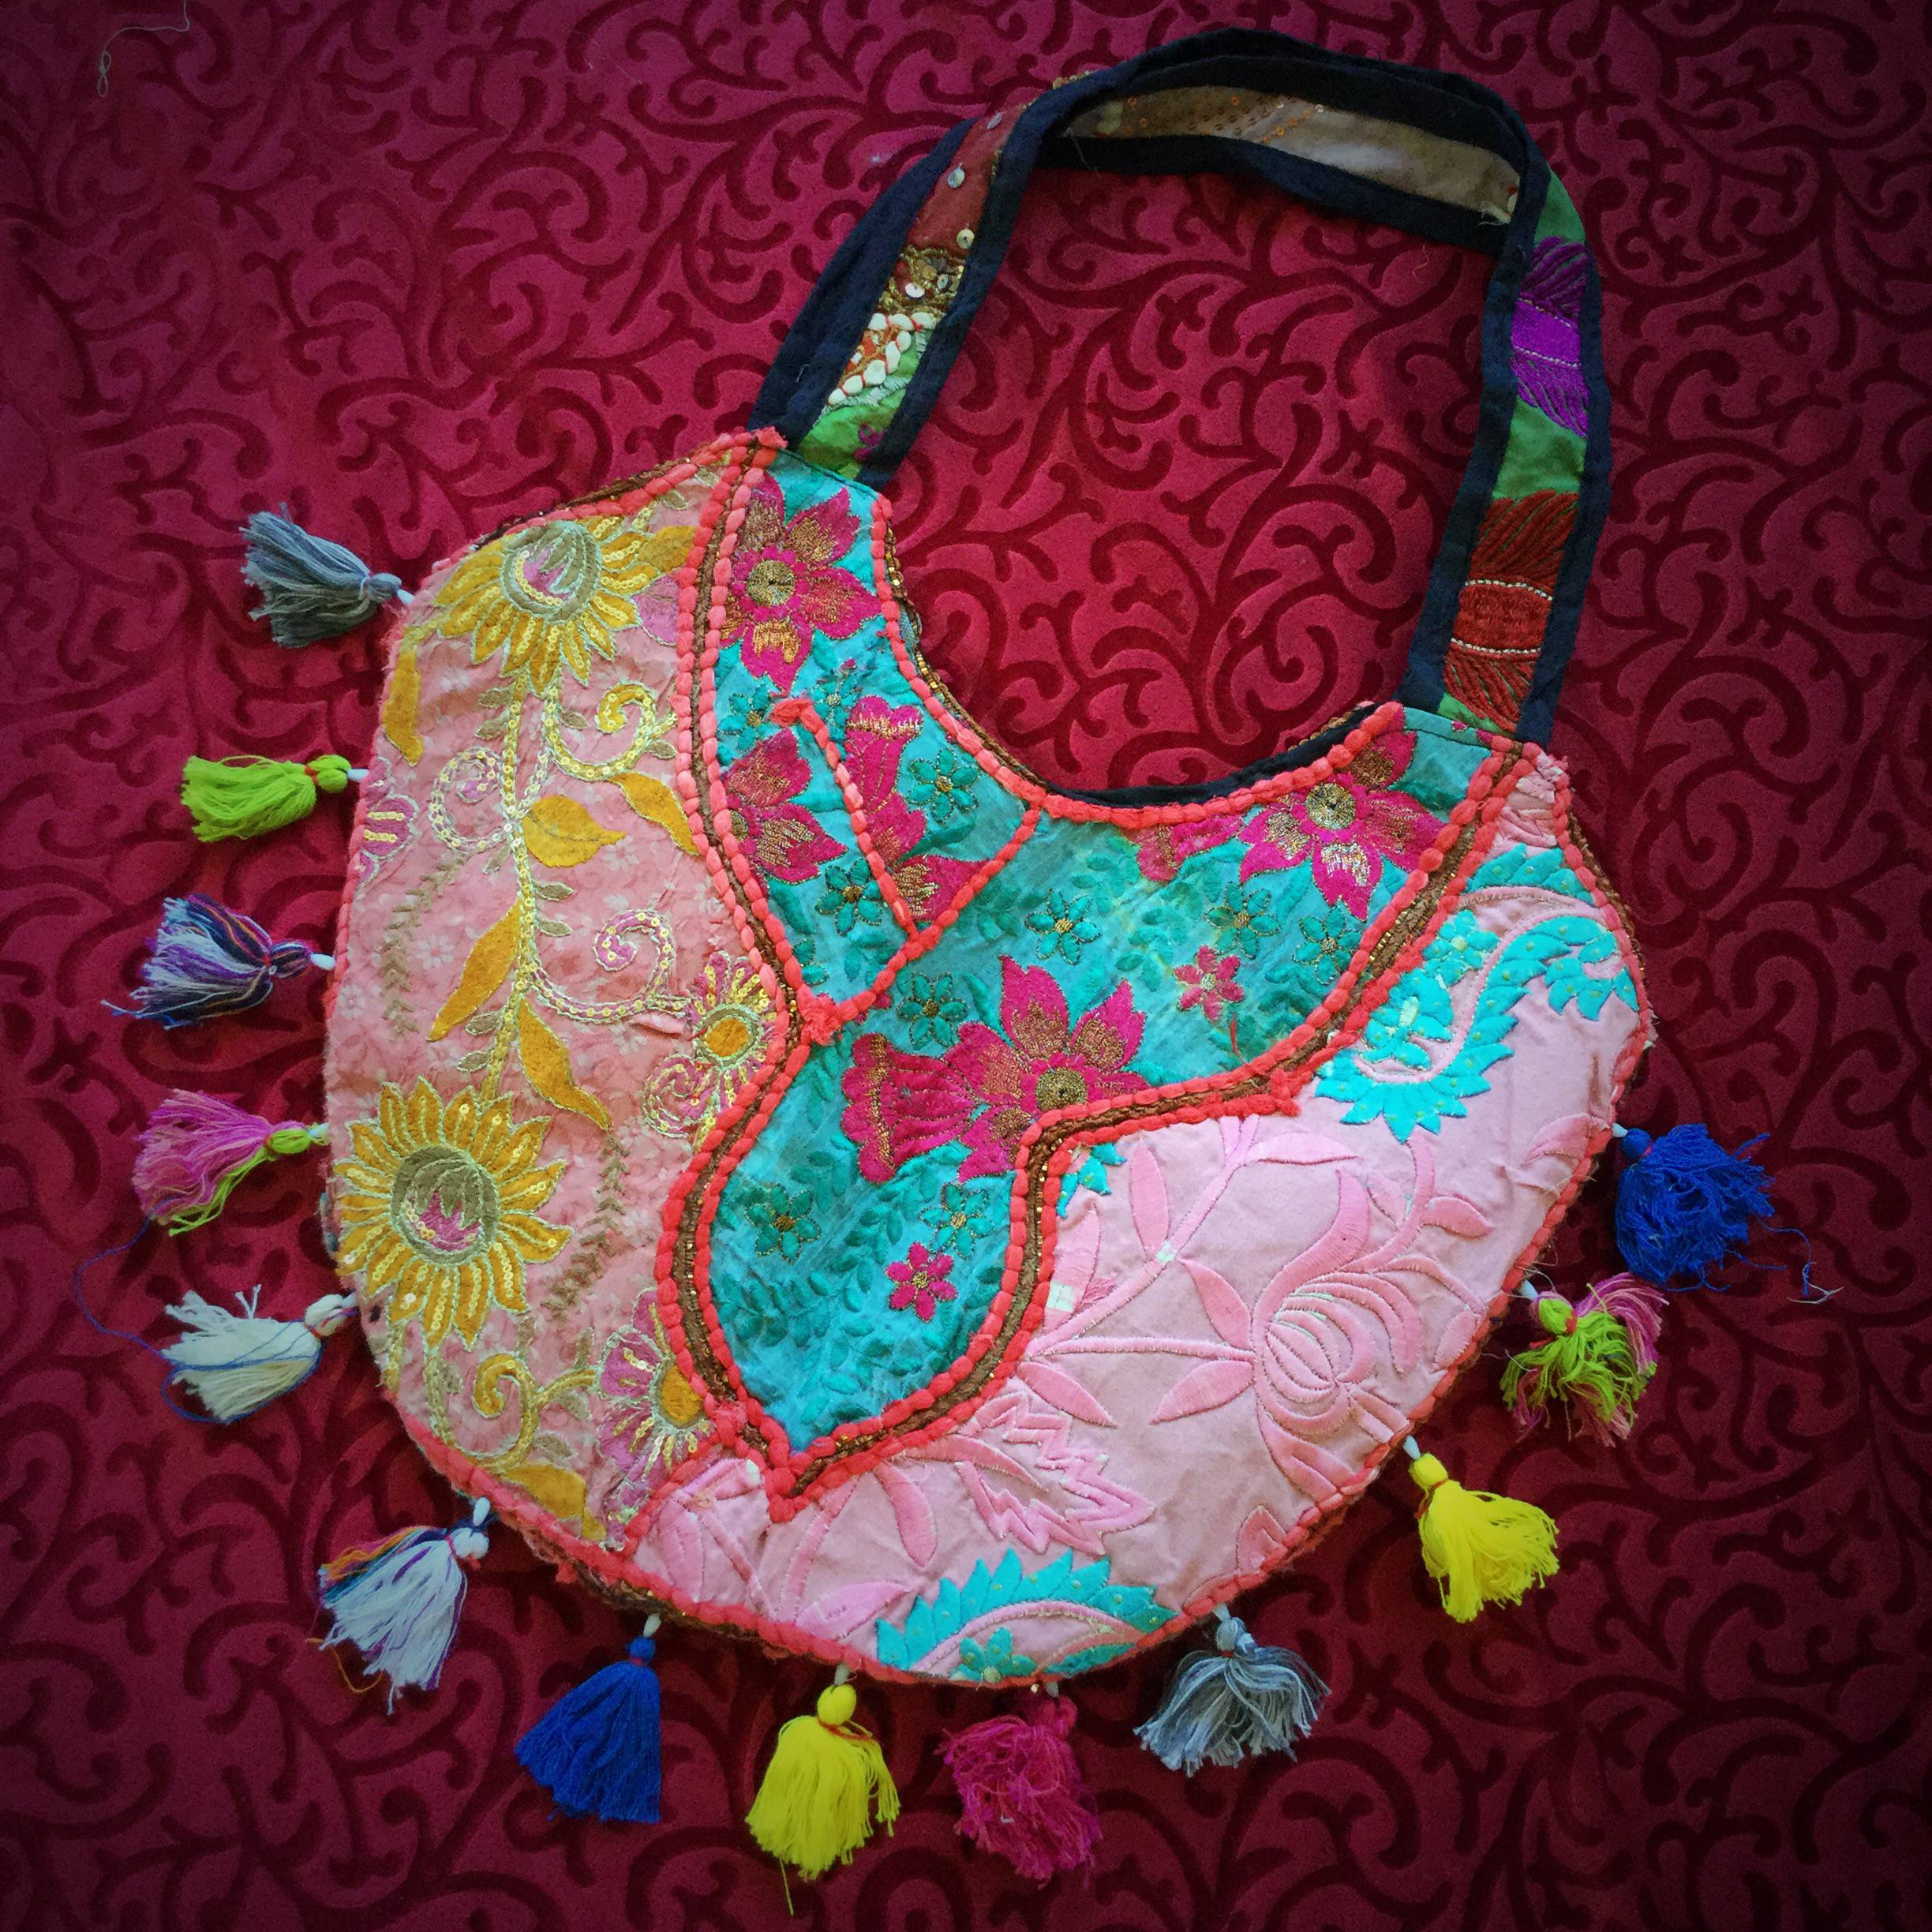 Magical Indian Tapestry Bags To Be Your Traveling Companion Sage Goddess